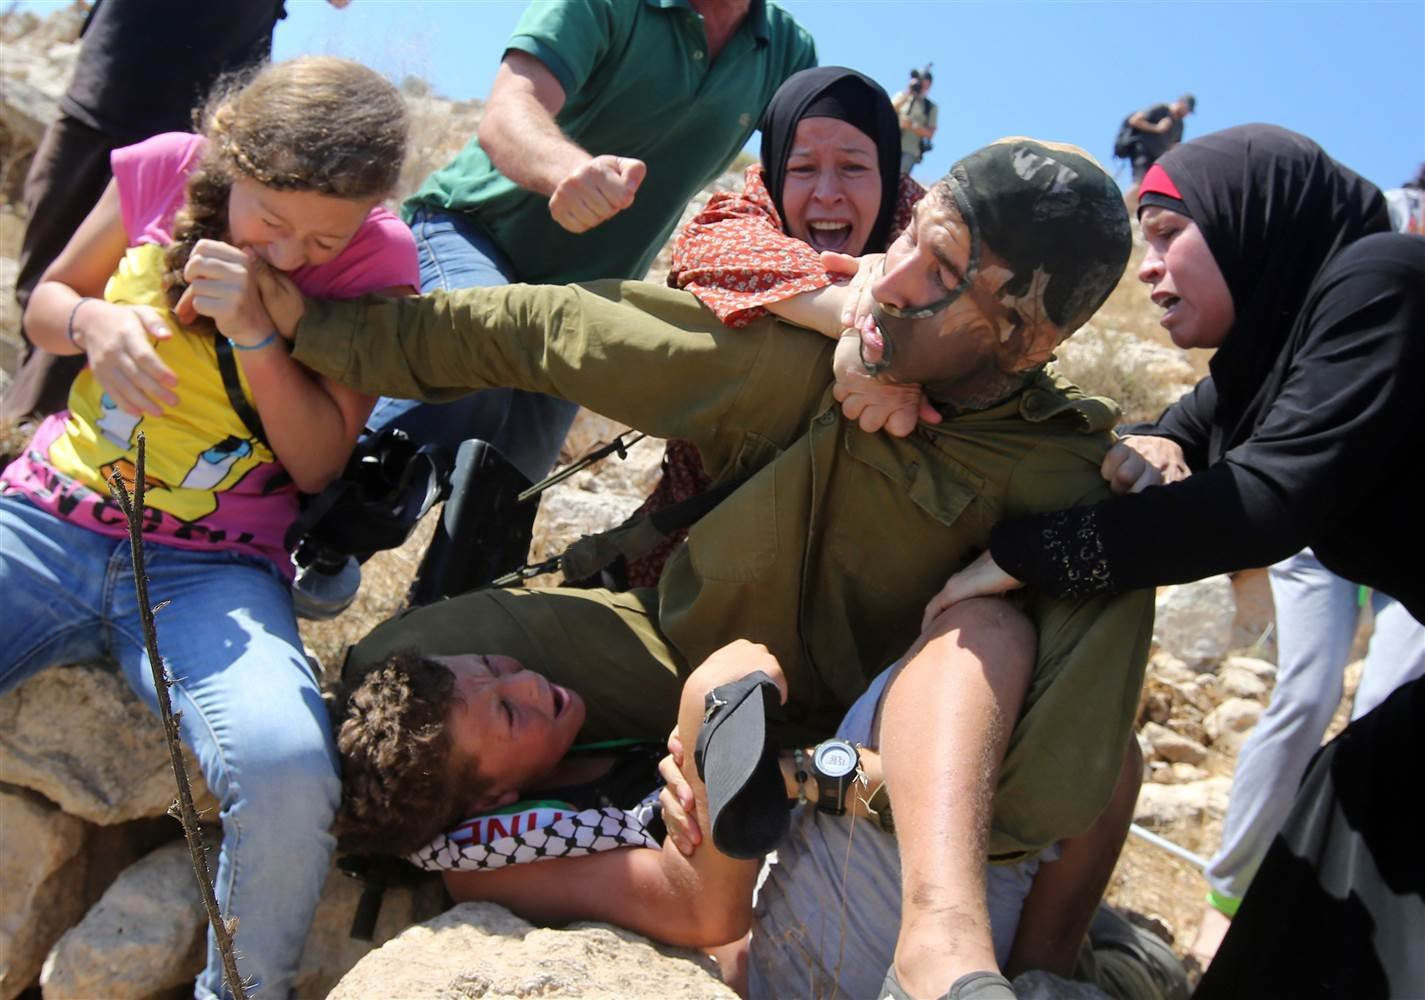 Tamimi, far left, is seen biting an Israeli soldier. Photo courtesy of NBC.